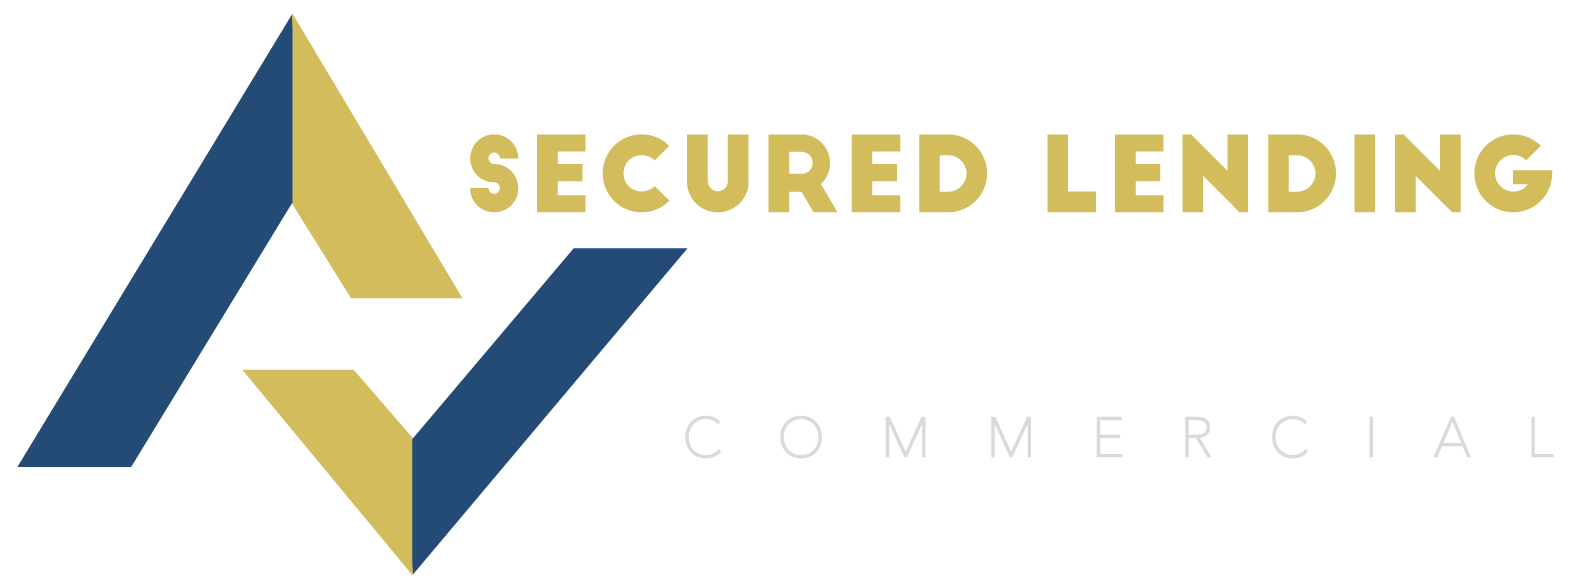 SECURED LENDING AUDITING COMMERCIAL